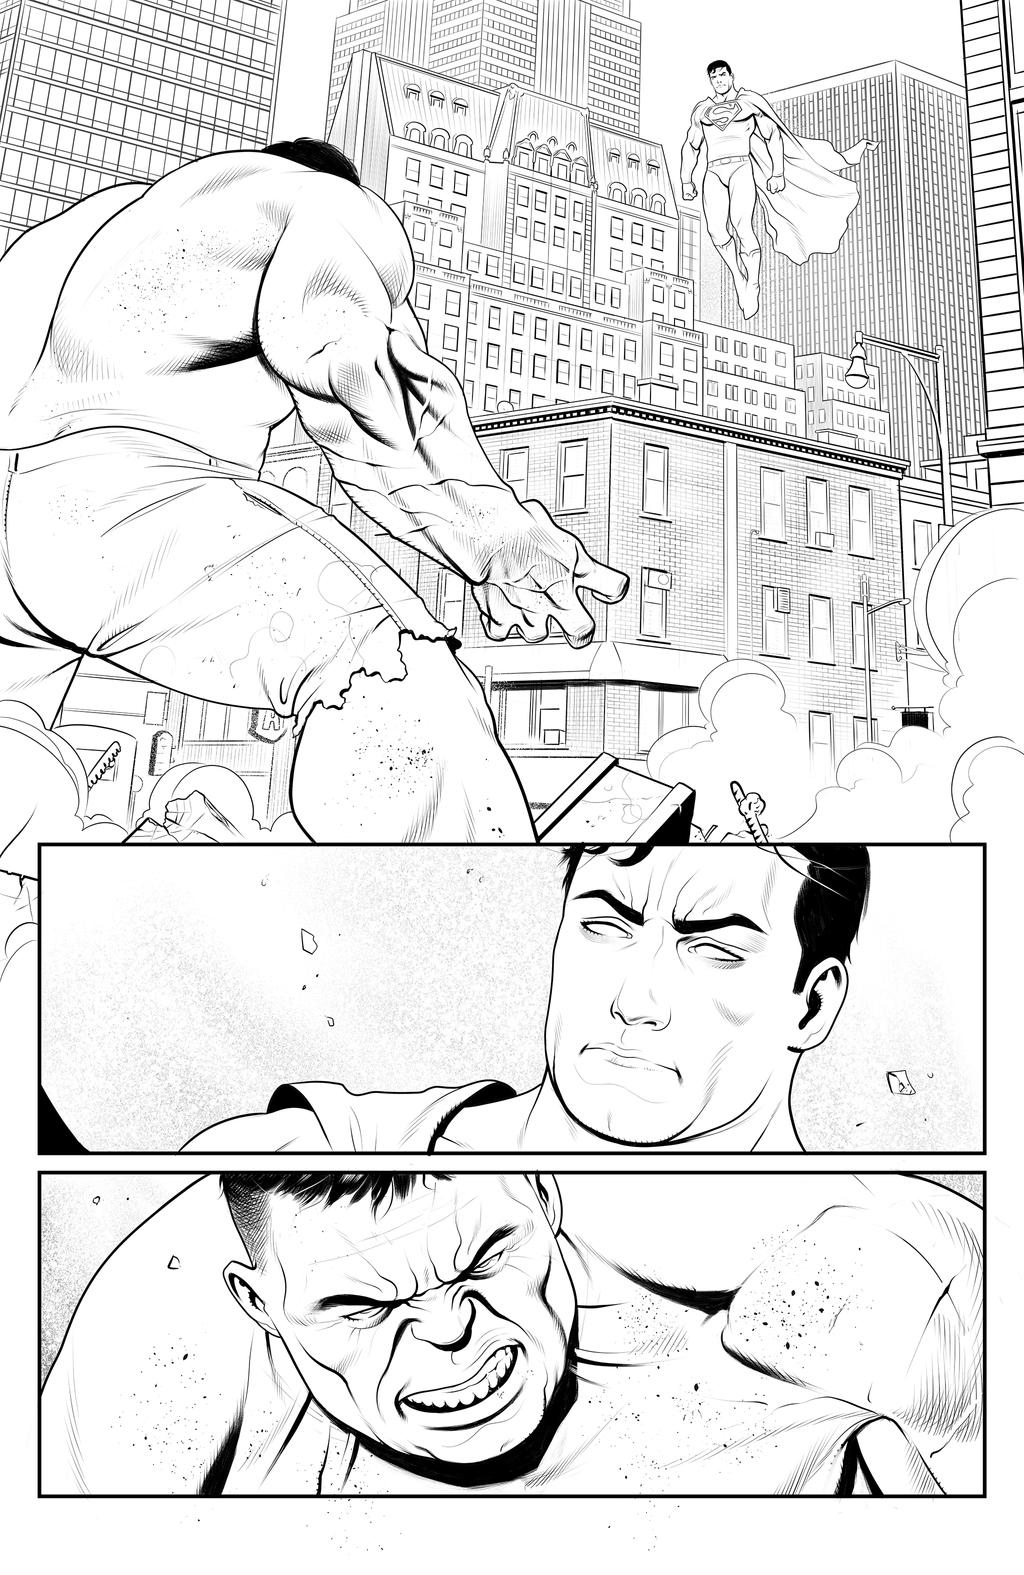 Hulk vs Superman Page 1 by ArminOzdic